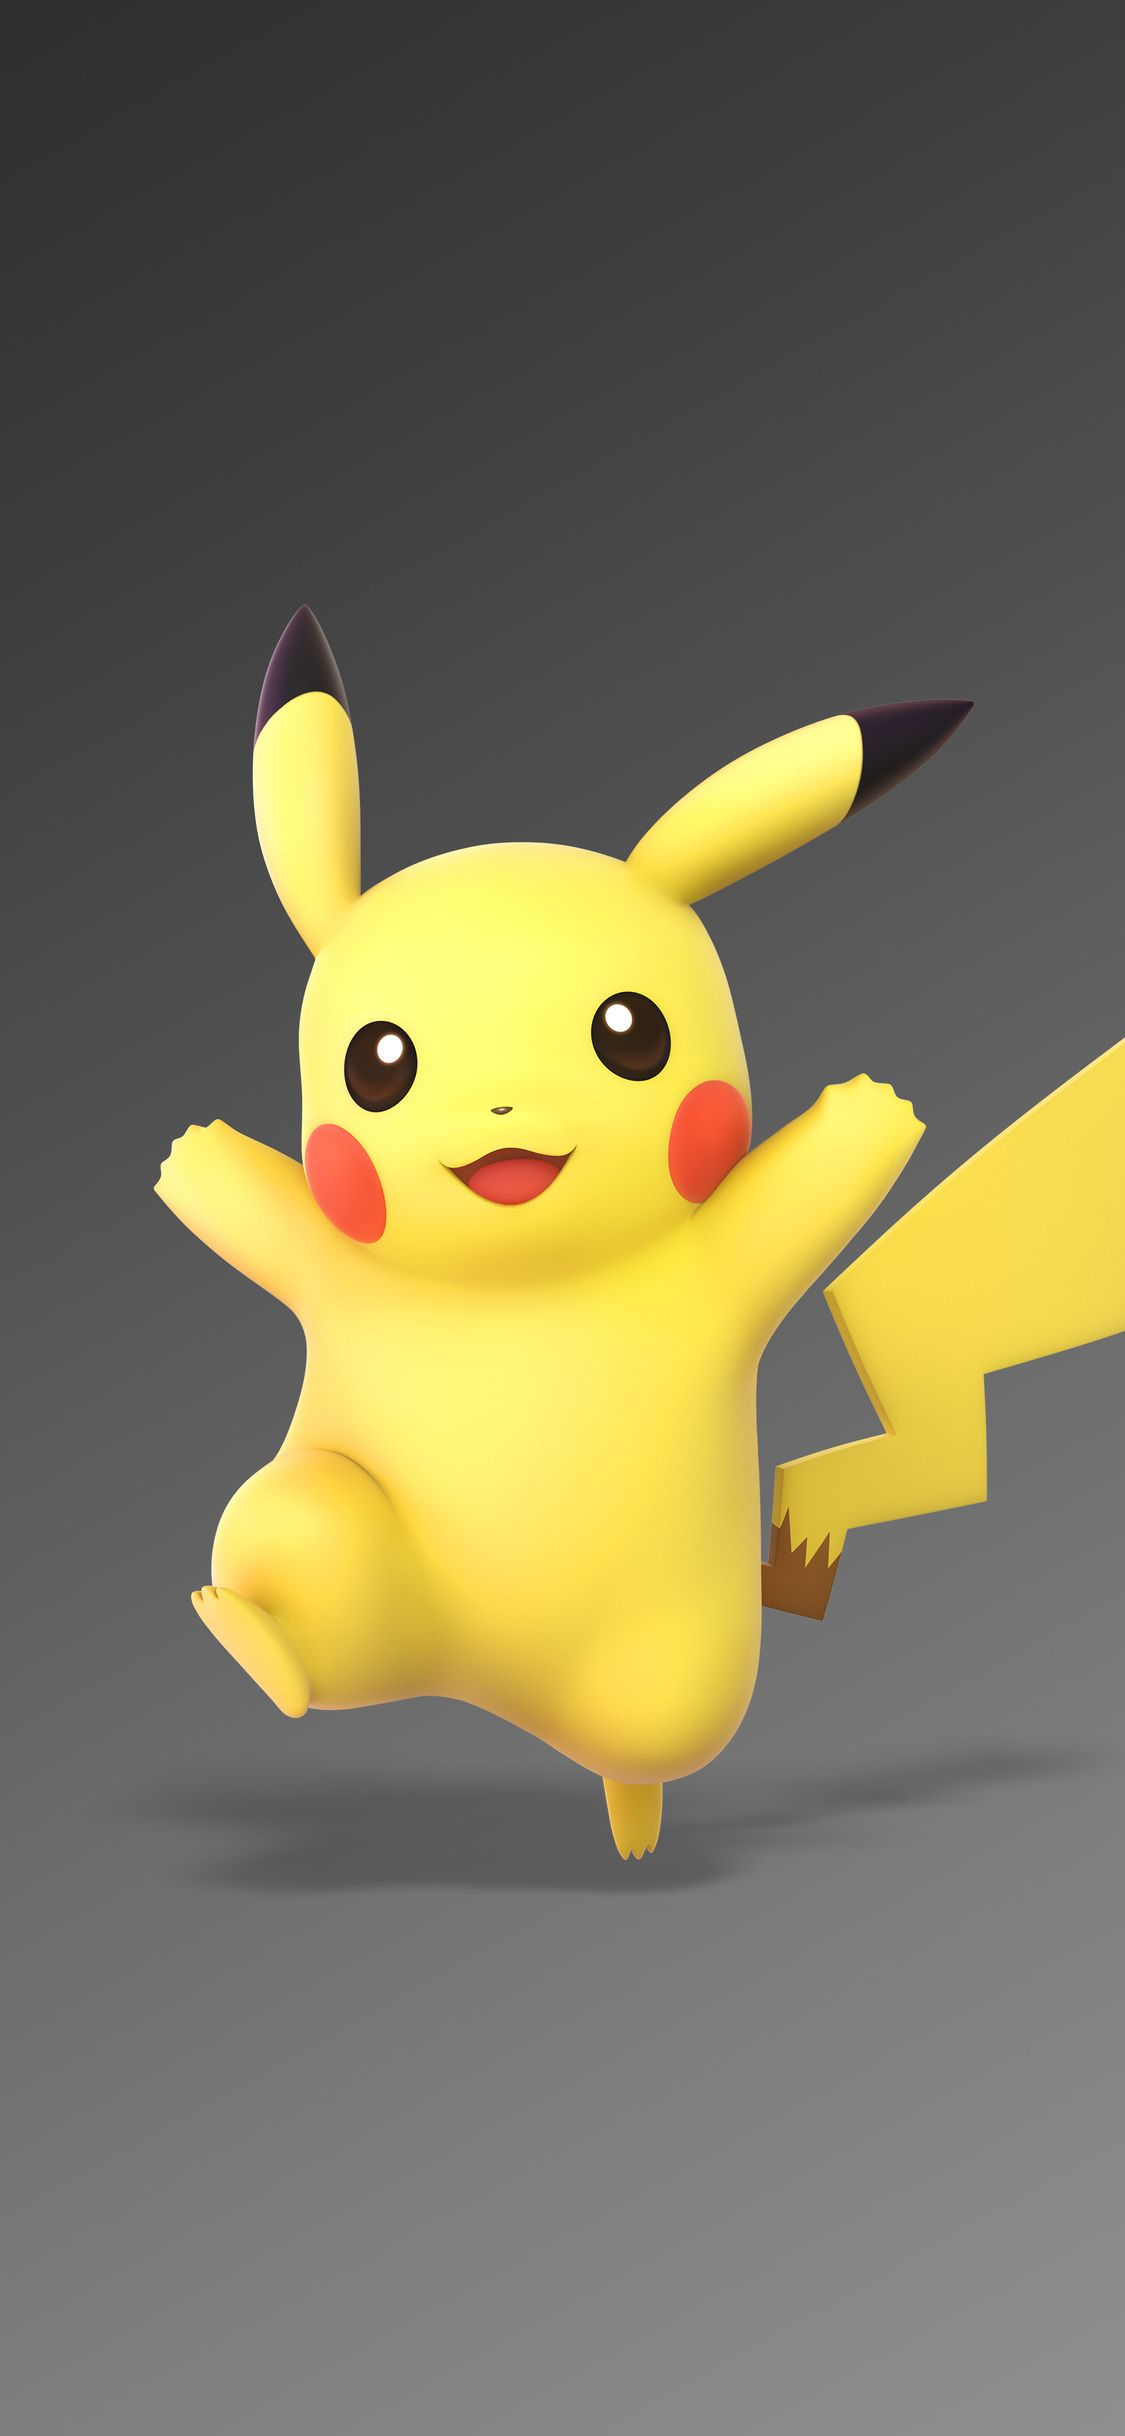 Pikachu Super Smash Bros Ultimate Iphone X